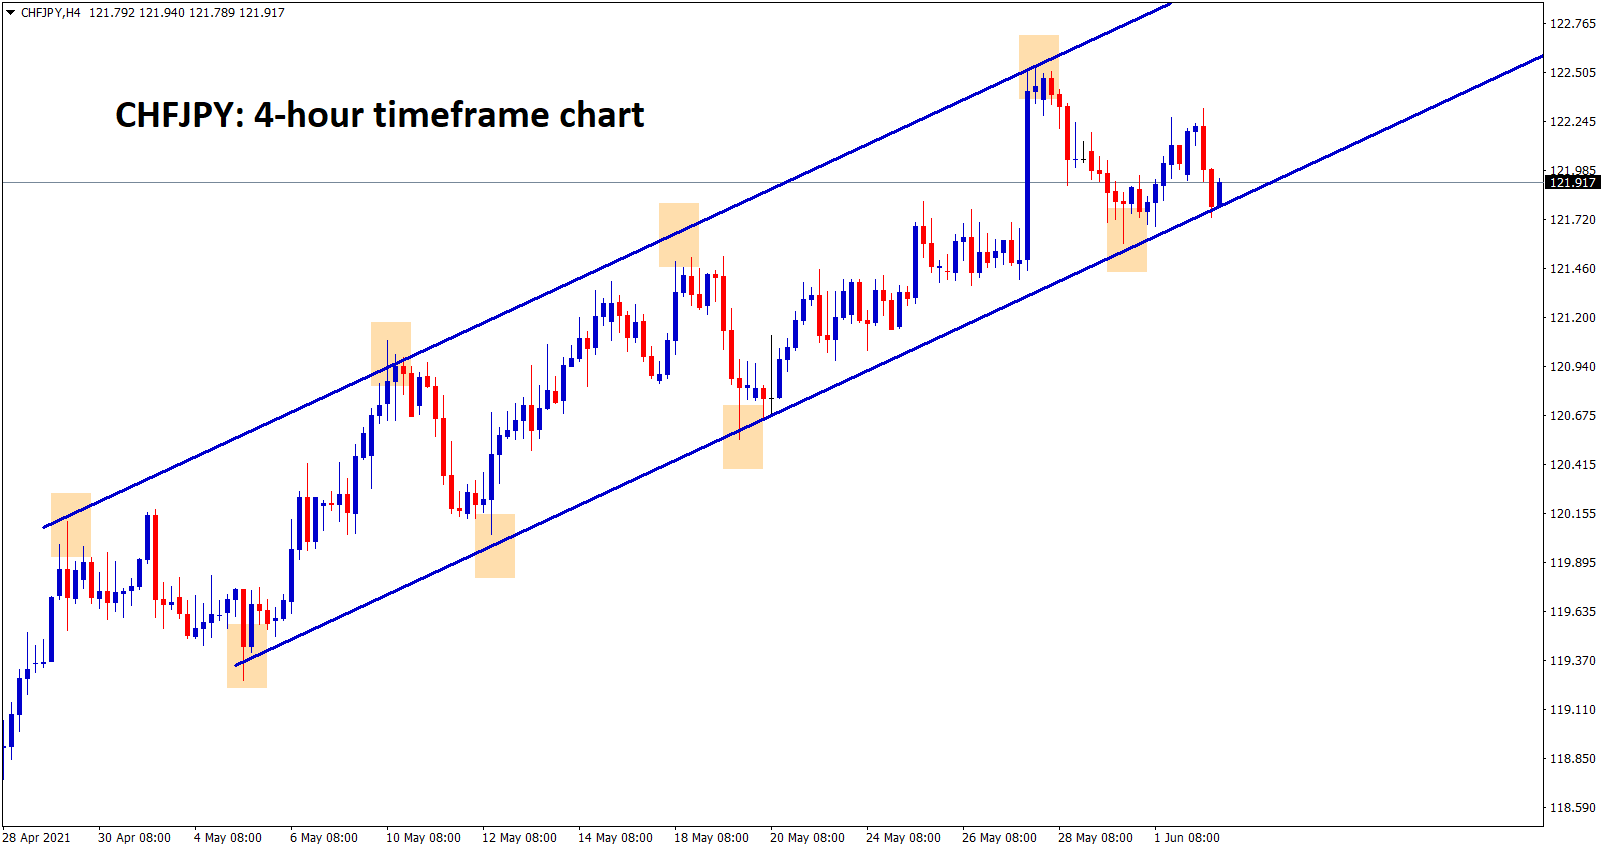 CHFJPY is still moving clearly in an Ascending channel forming higher highs and higher lows